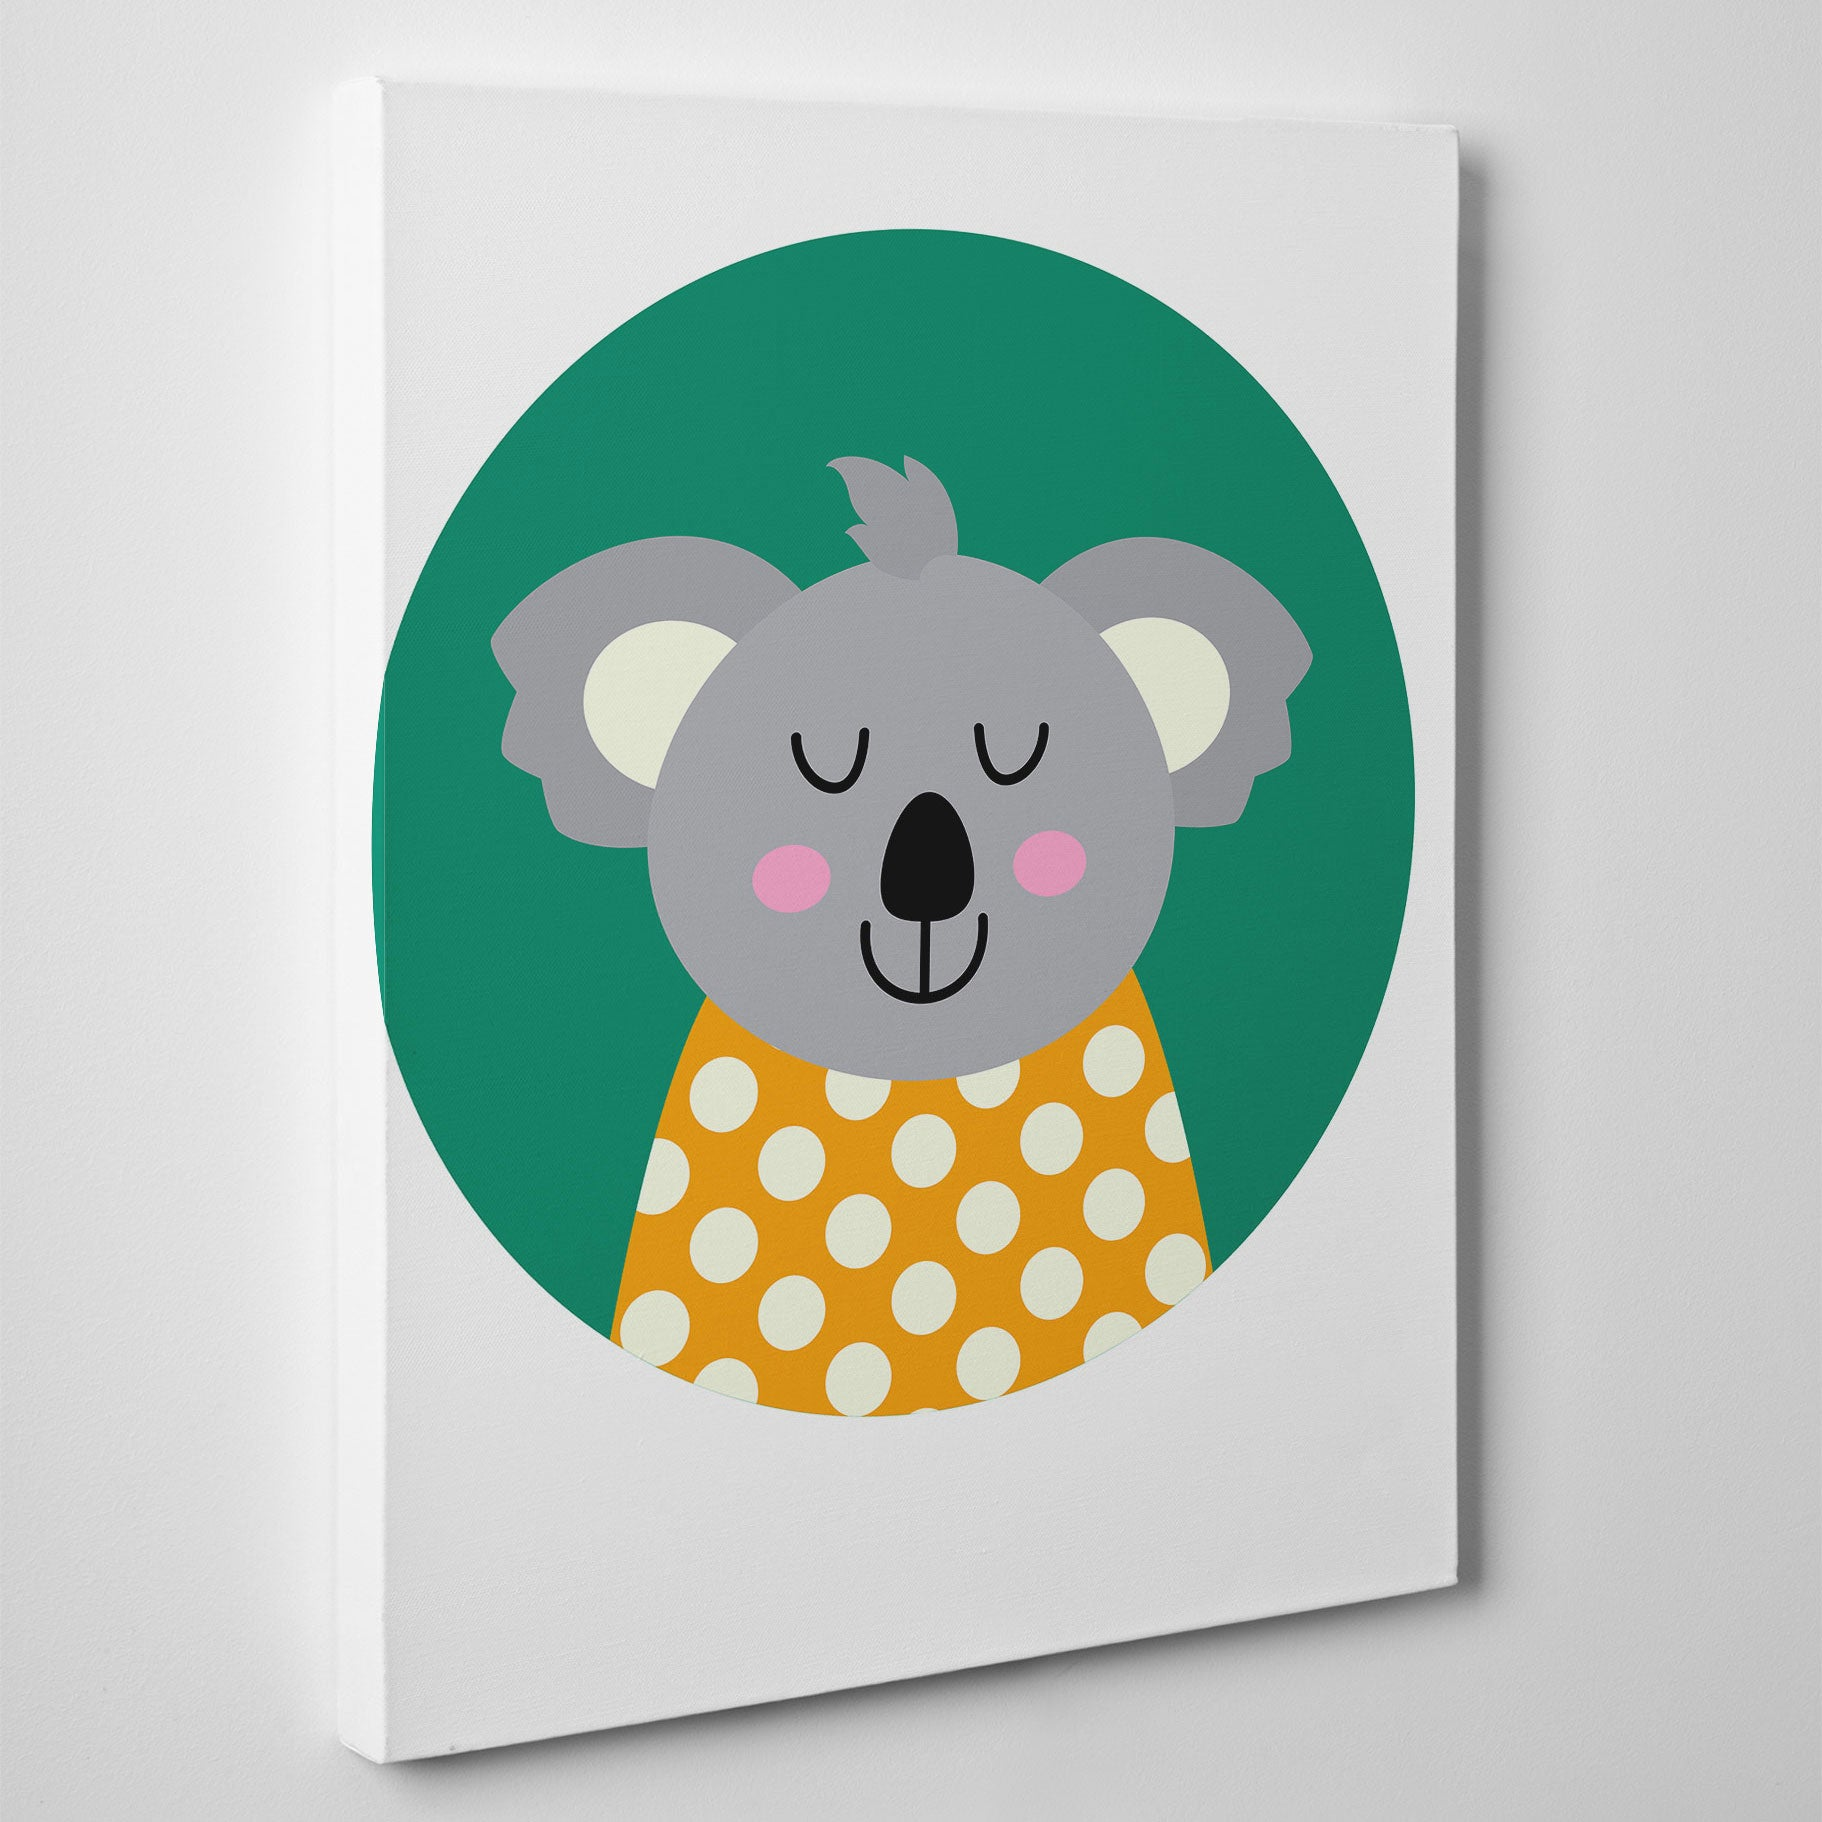 Nursery canvas print with a smiley koala bear in a green circle side view